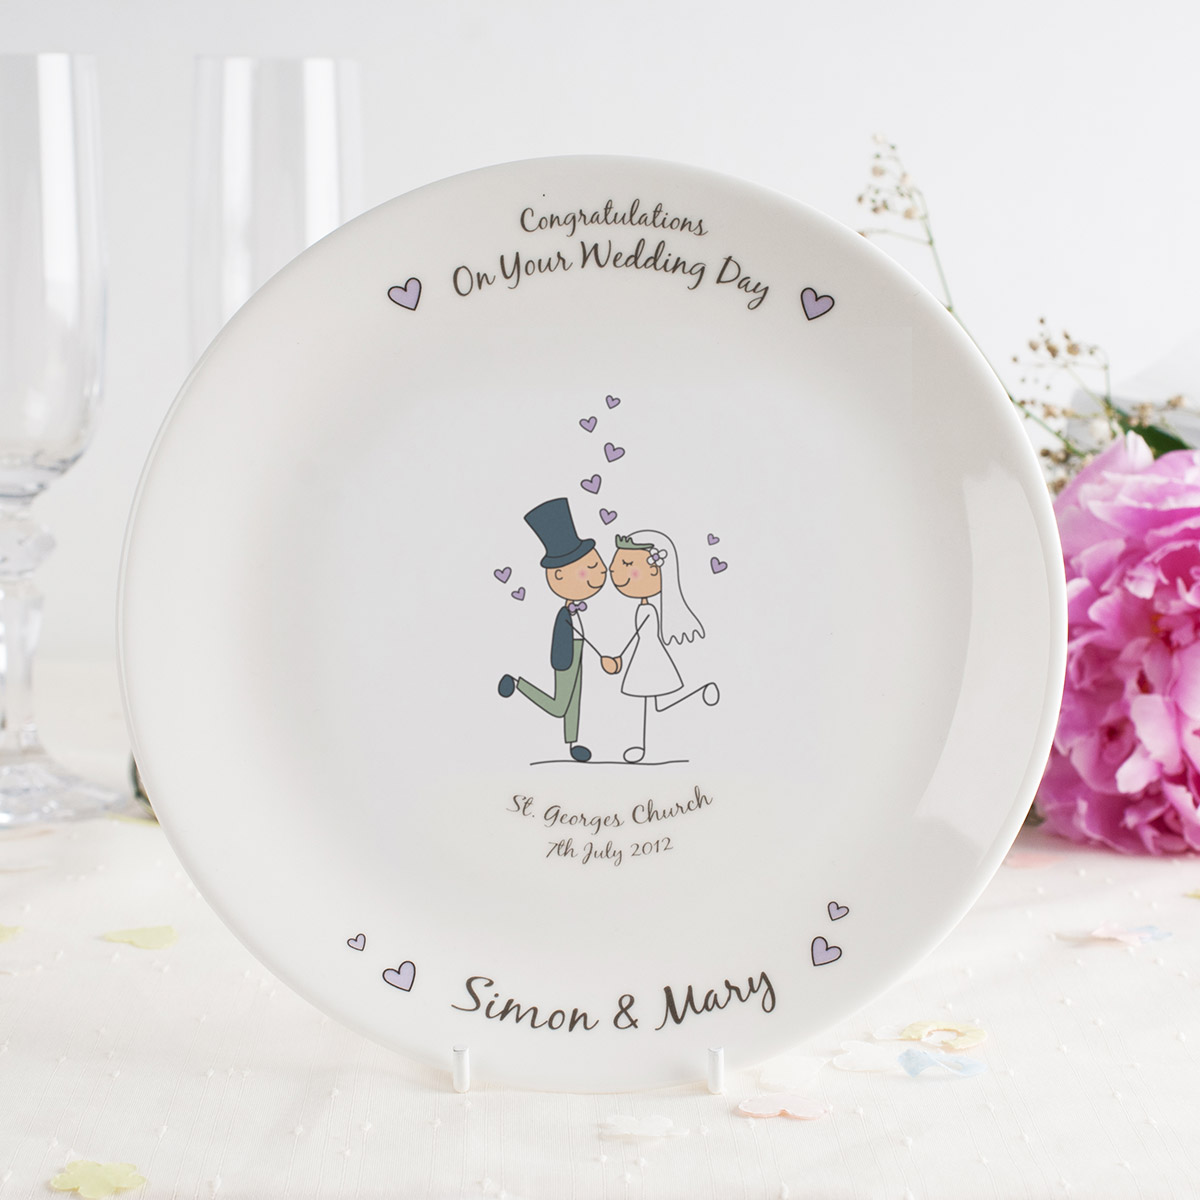 Wedding Gifts For Chinese Couples : Pics PhotosWedding Couple Personalized Bridal Wedding Candy Bar ...